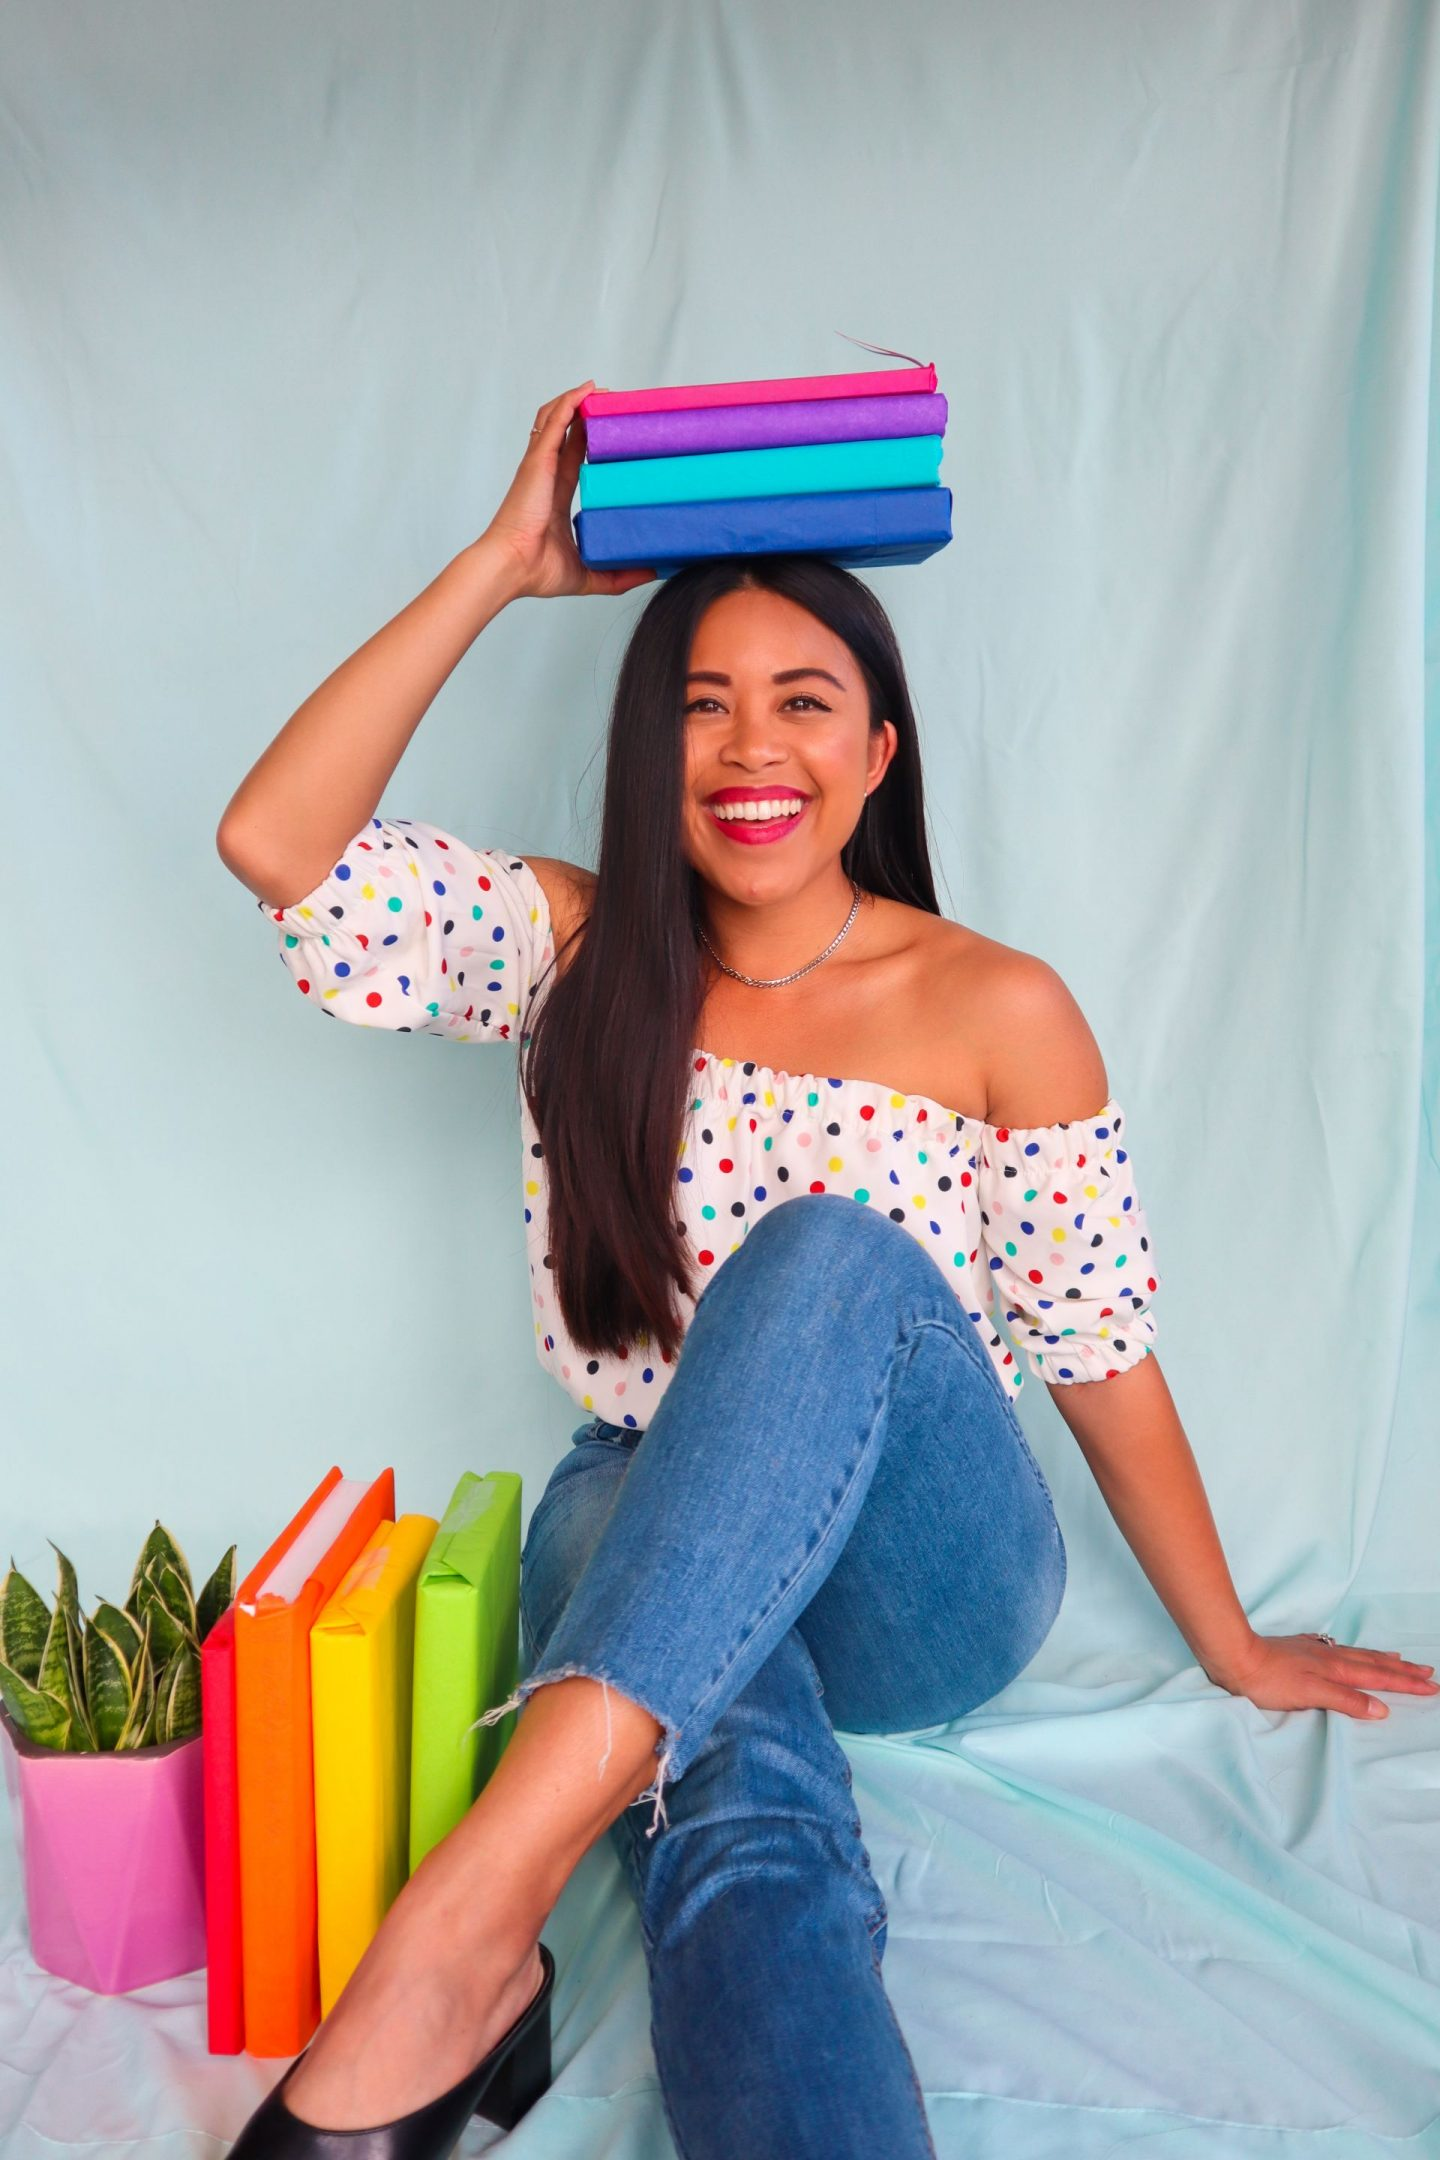 Pose with books - Creative Book Photography Ideas – book photography ideas – Instagram photo ideas – books photography Instagram – indoor photo shoot ideas – creative Instagram photos